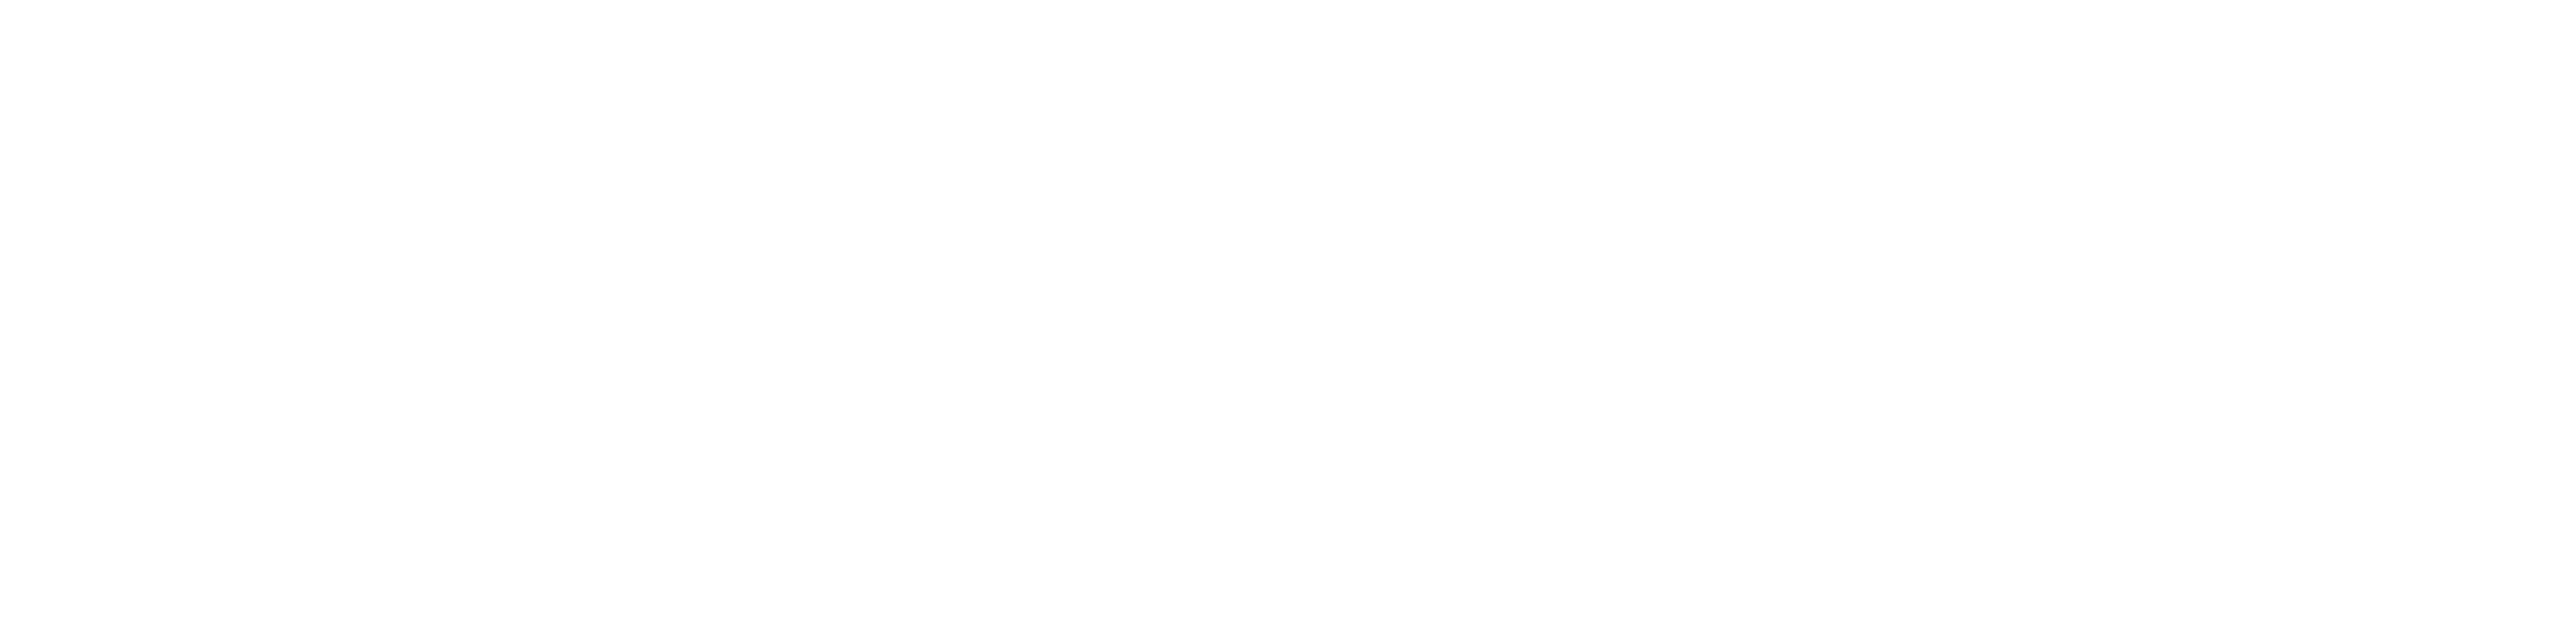 Welcome to Bayview Baptist Church